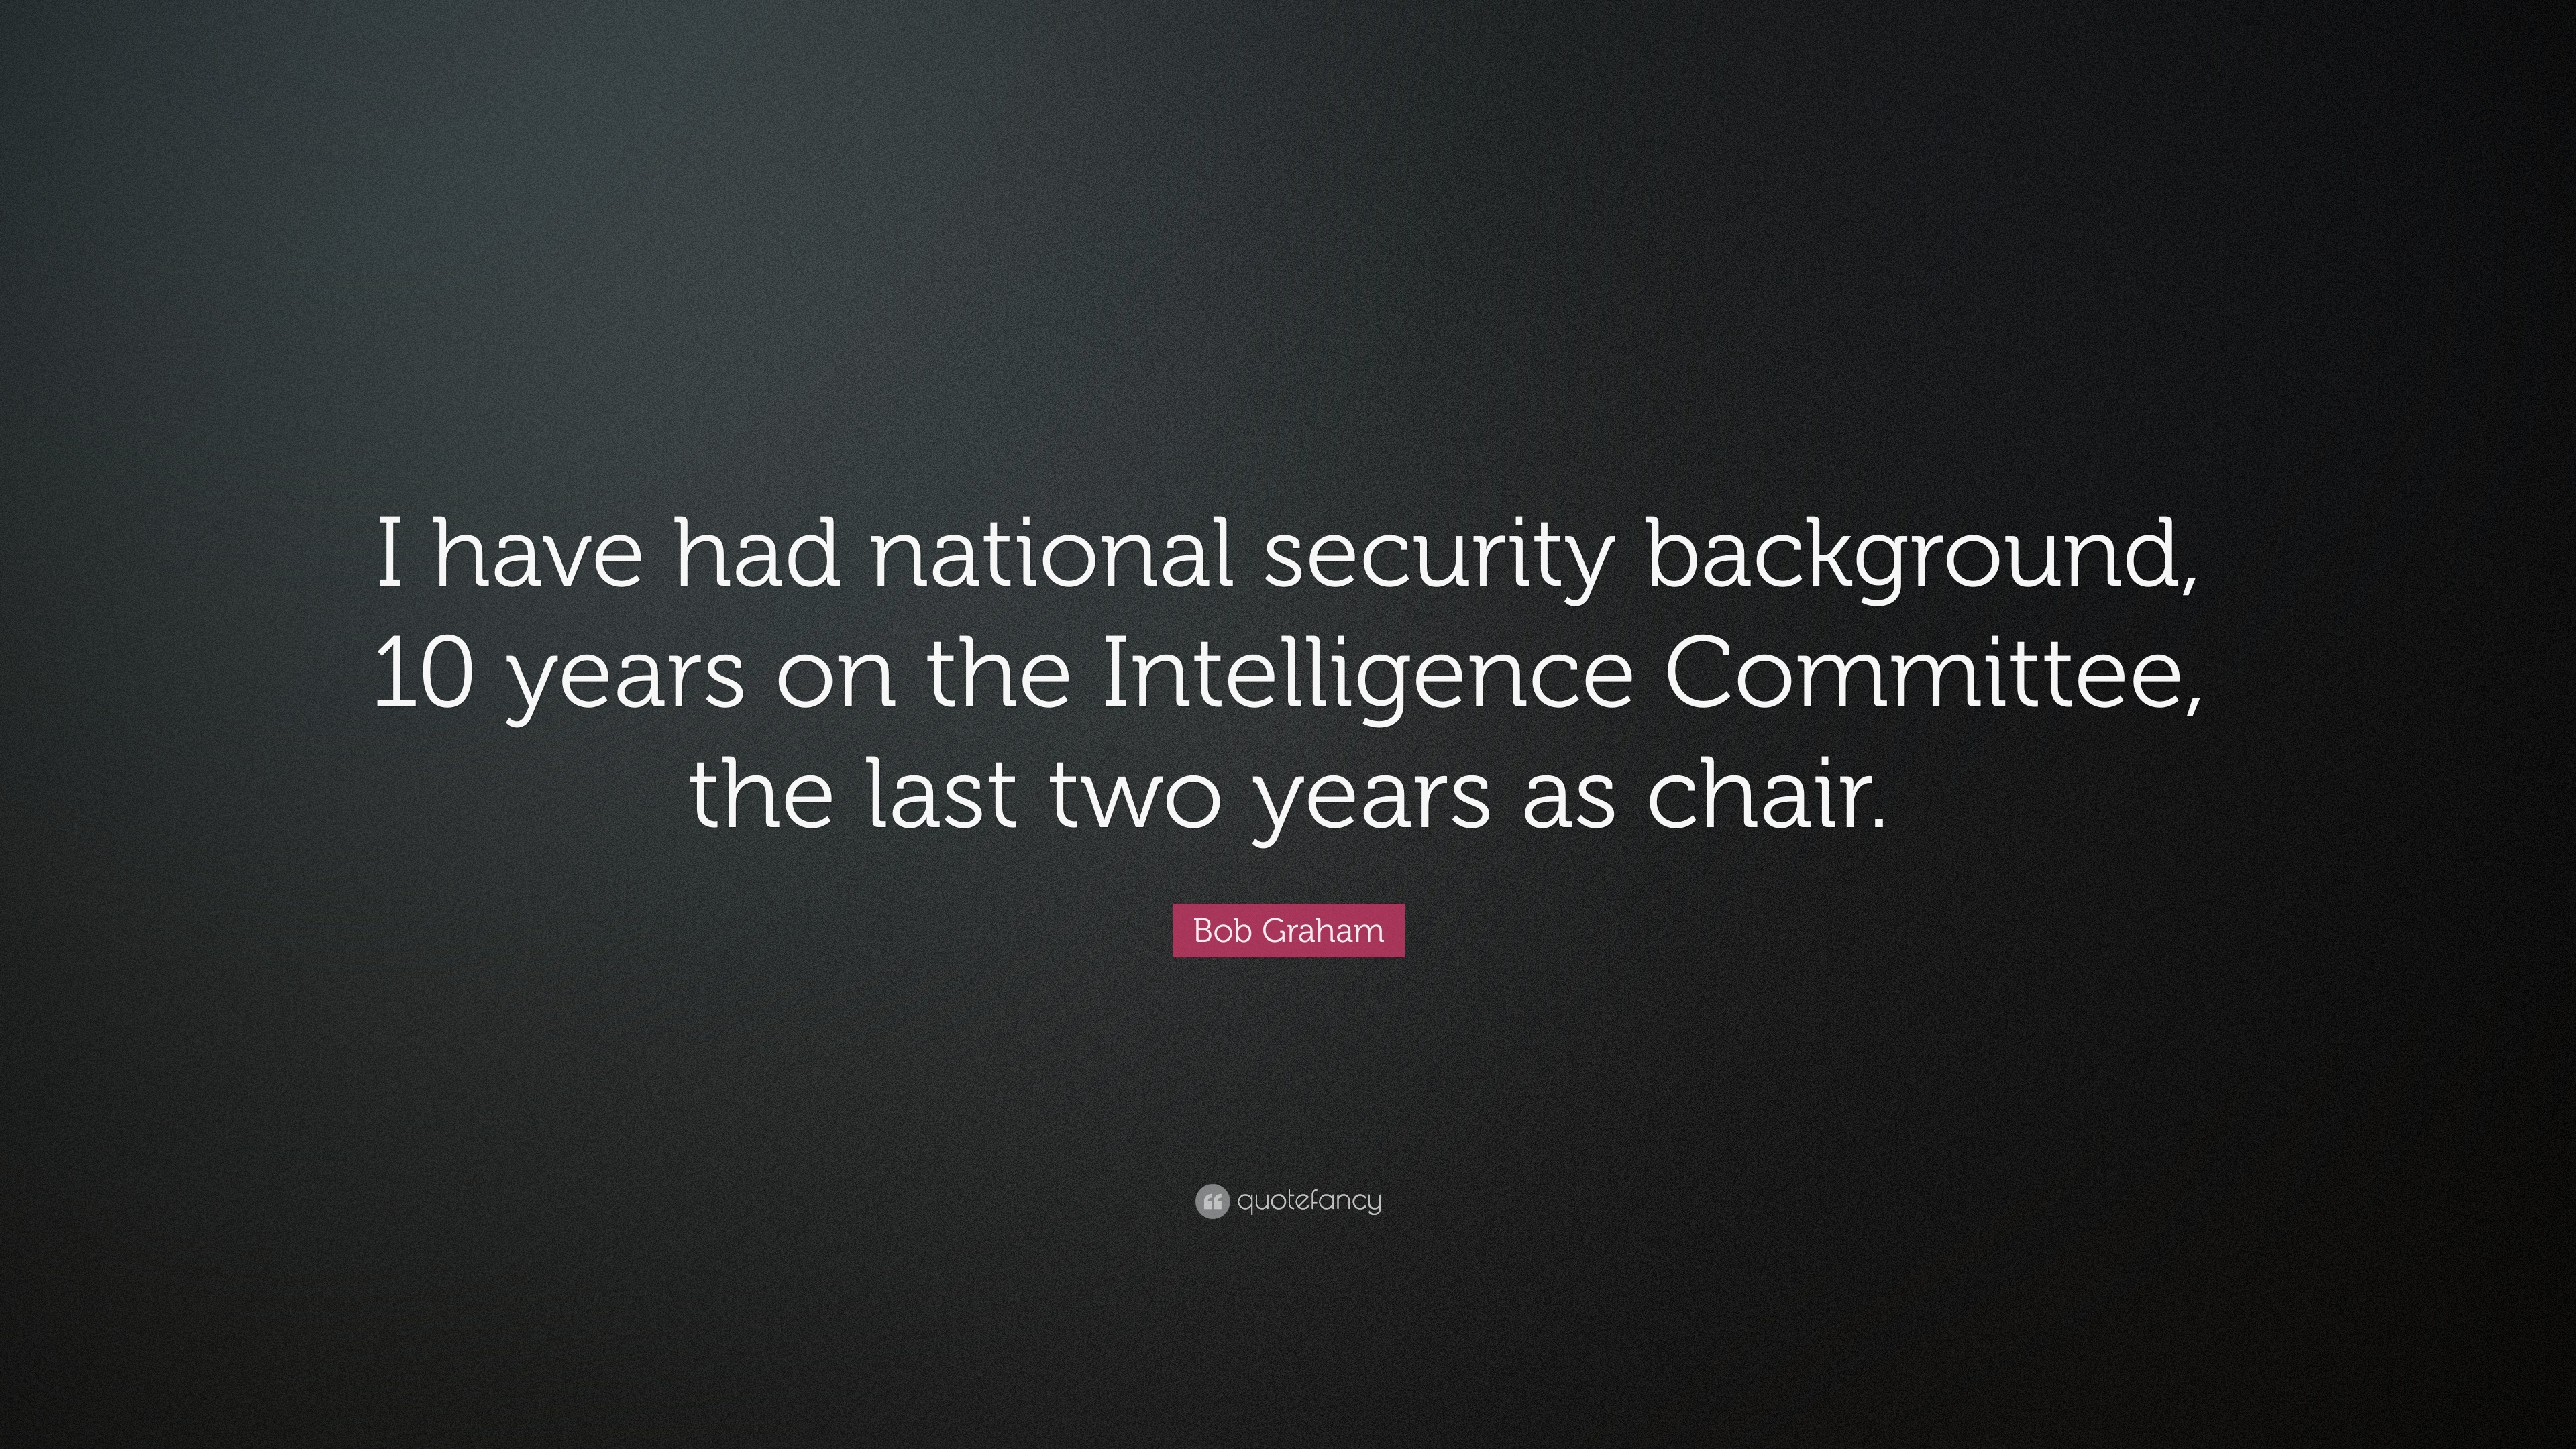 Quotes About Security Bob Graham Quotes 15 Wallpapers  Quotefancy